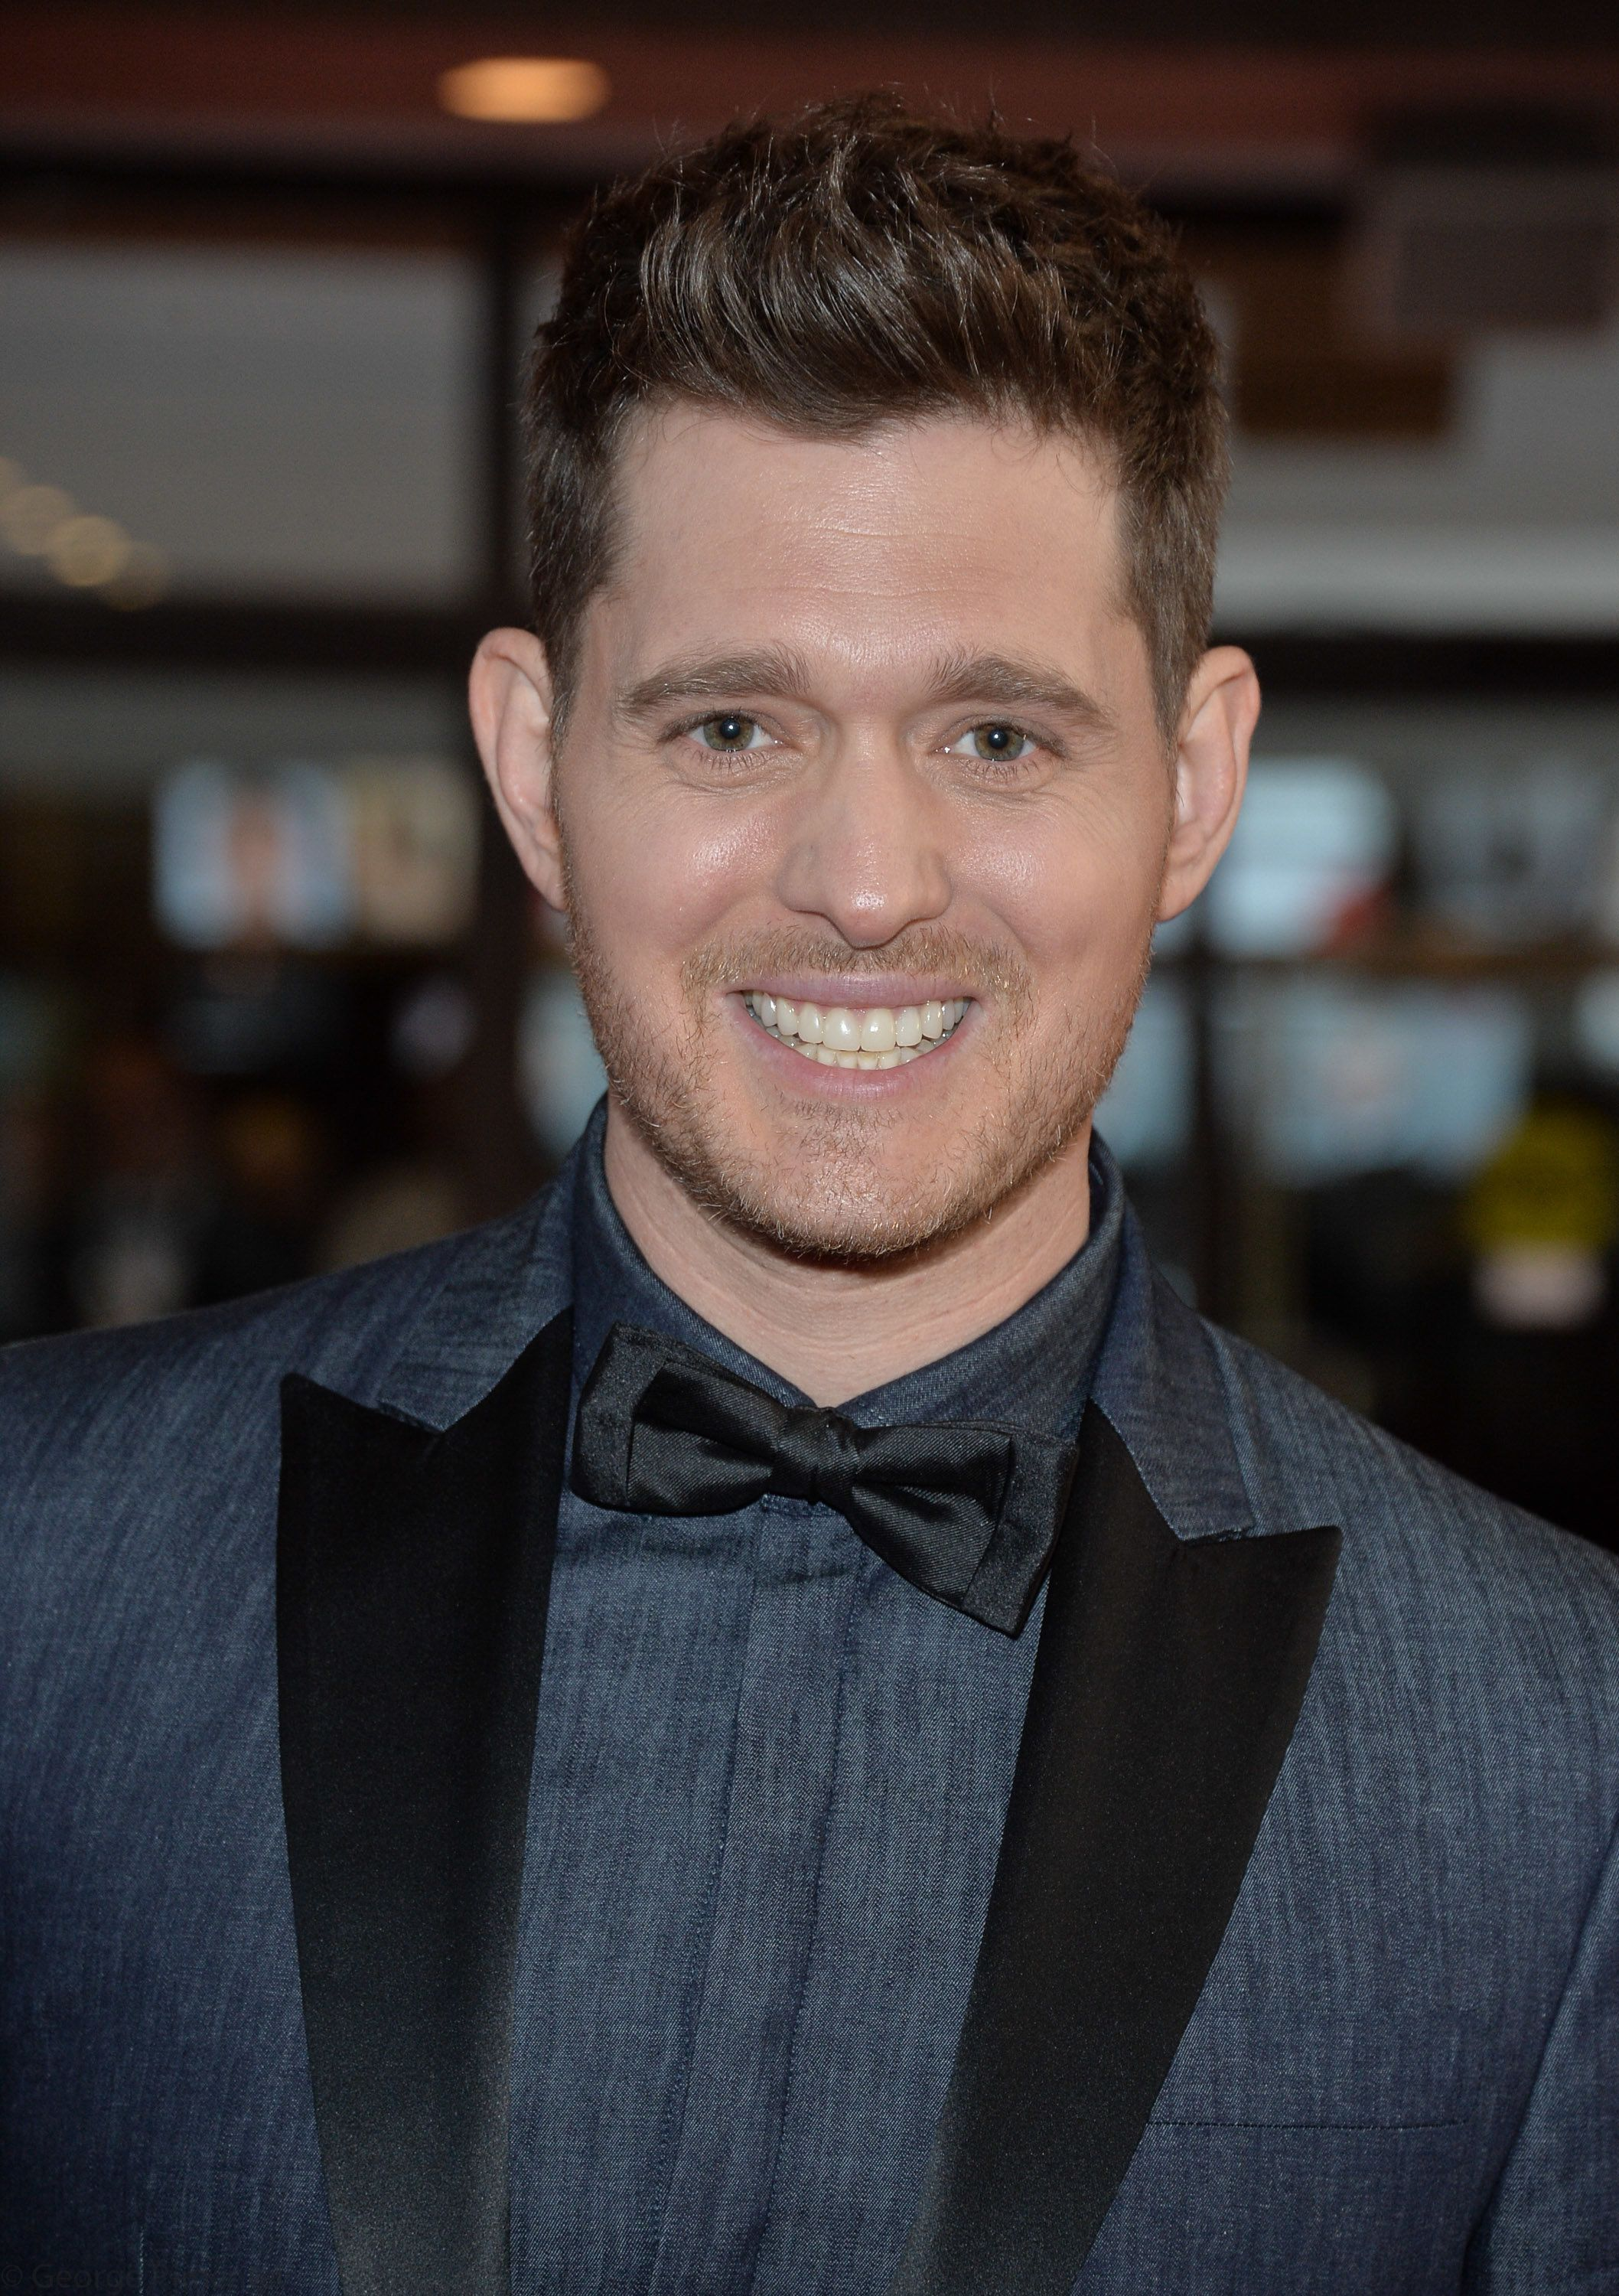 Michael Bublé Shares Rare Family Photo As They Celebrate Son Noah's Third